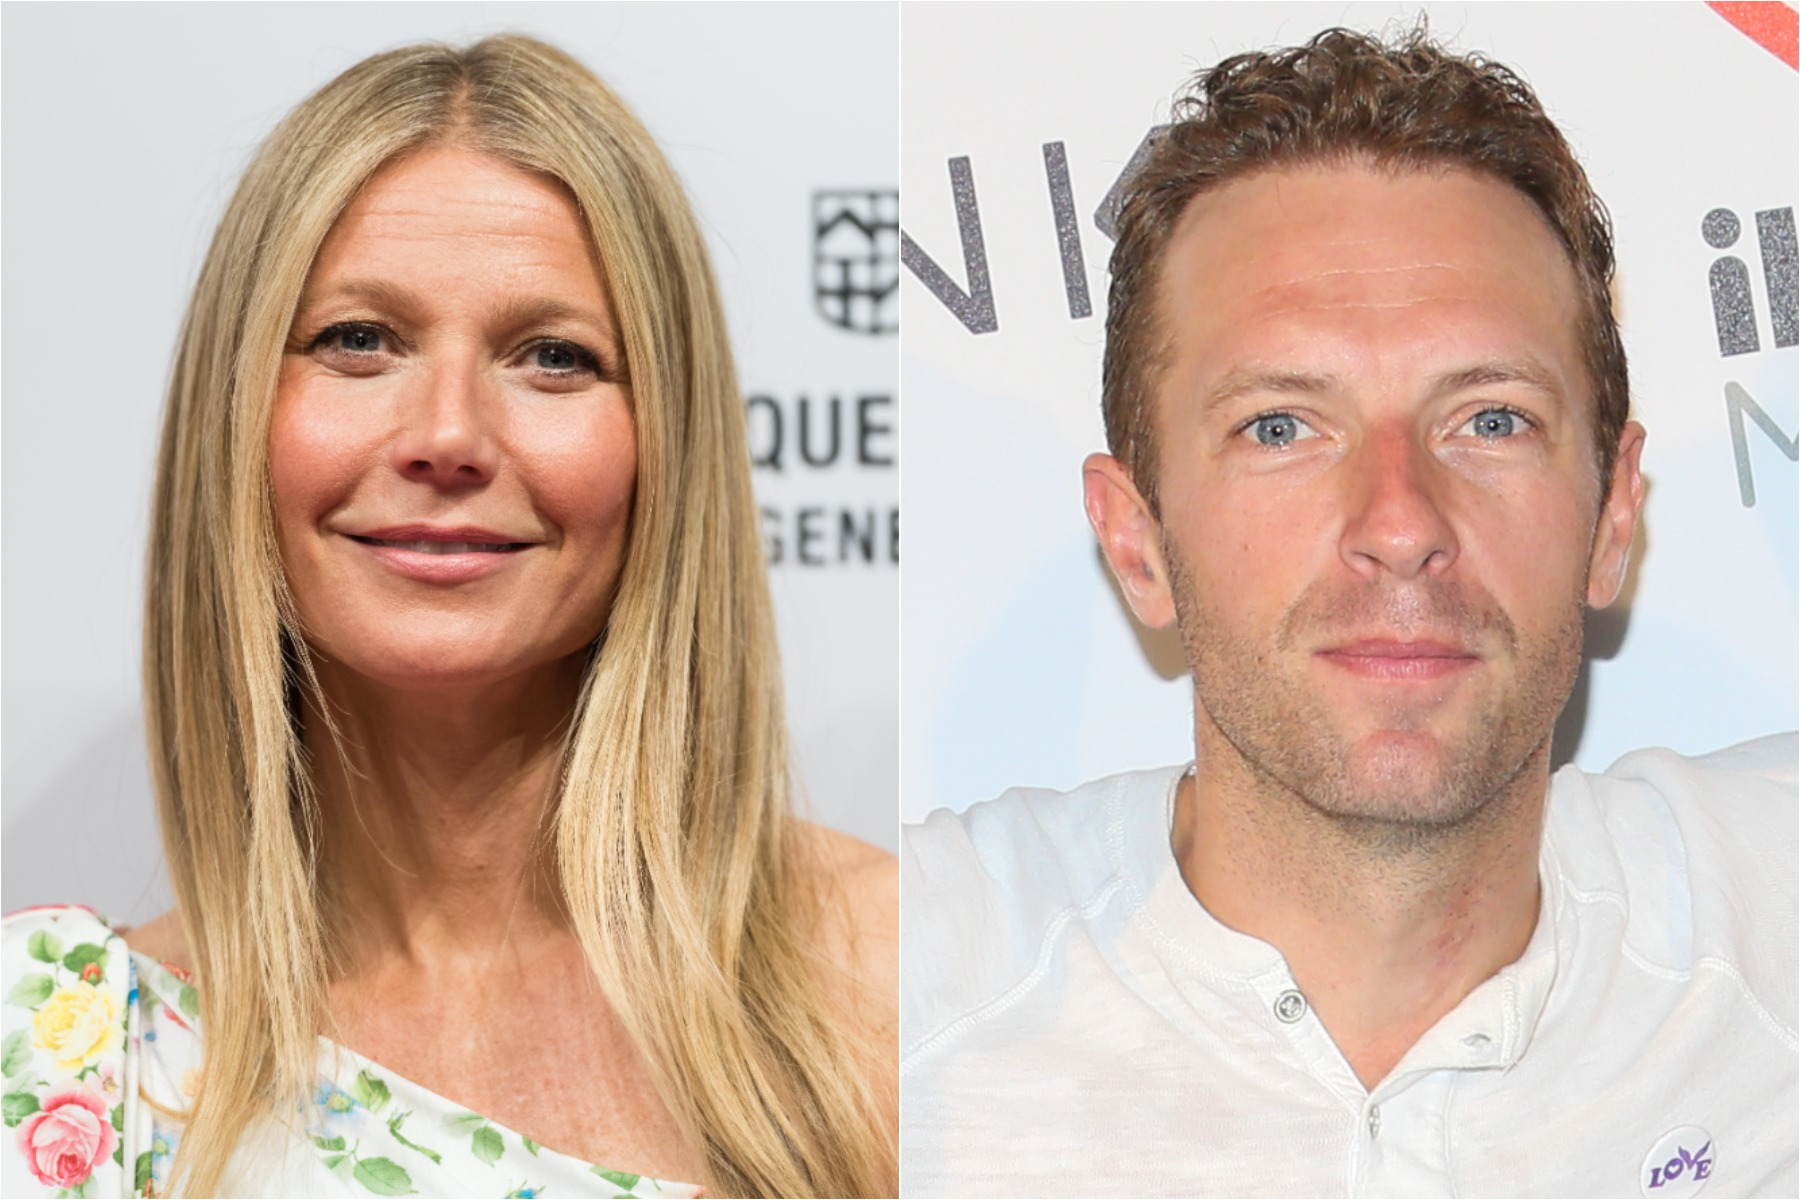 gwyneth paltrow and chris martin co-parenting